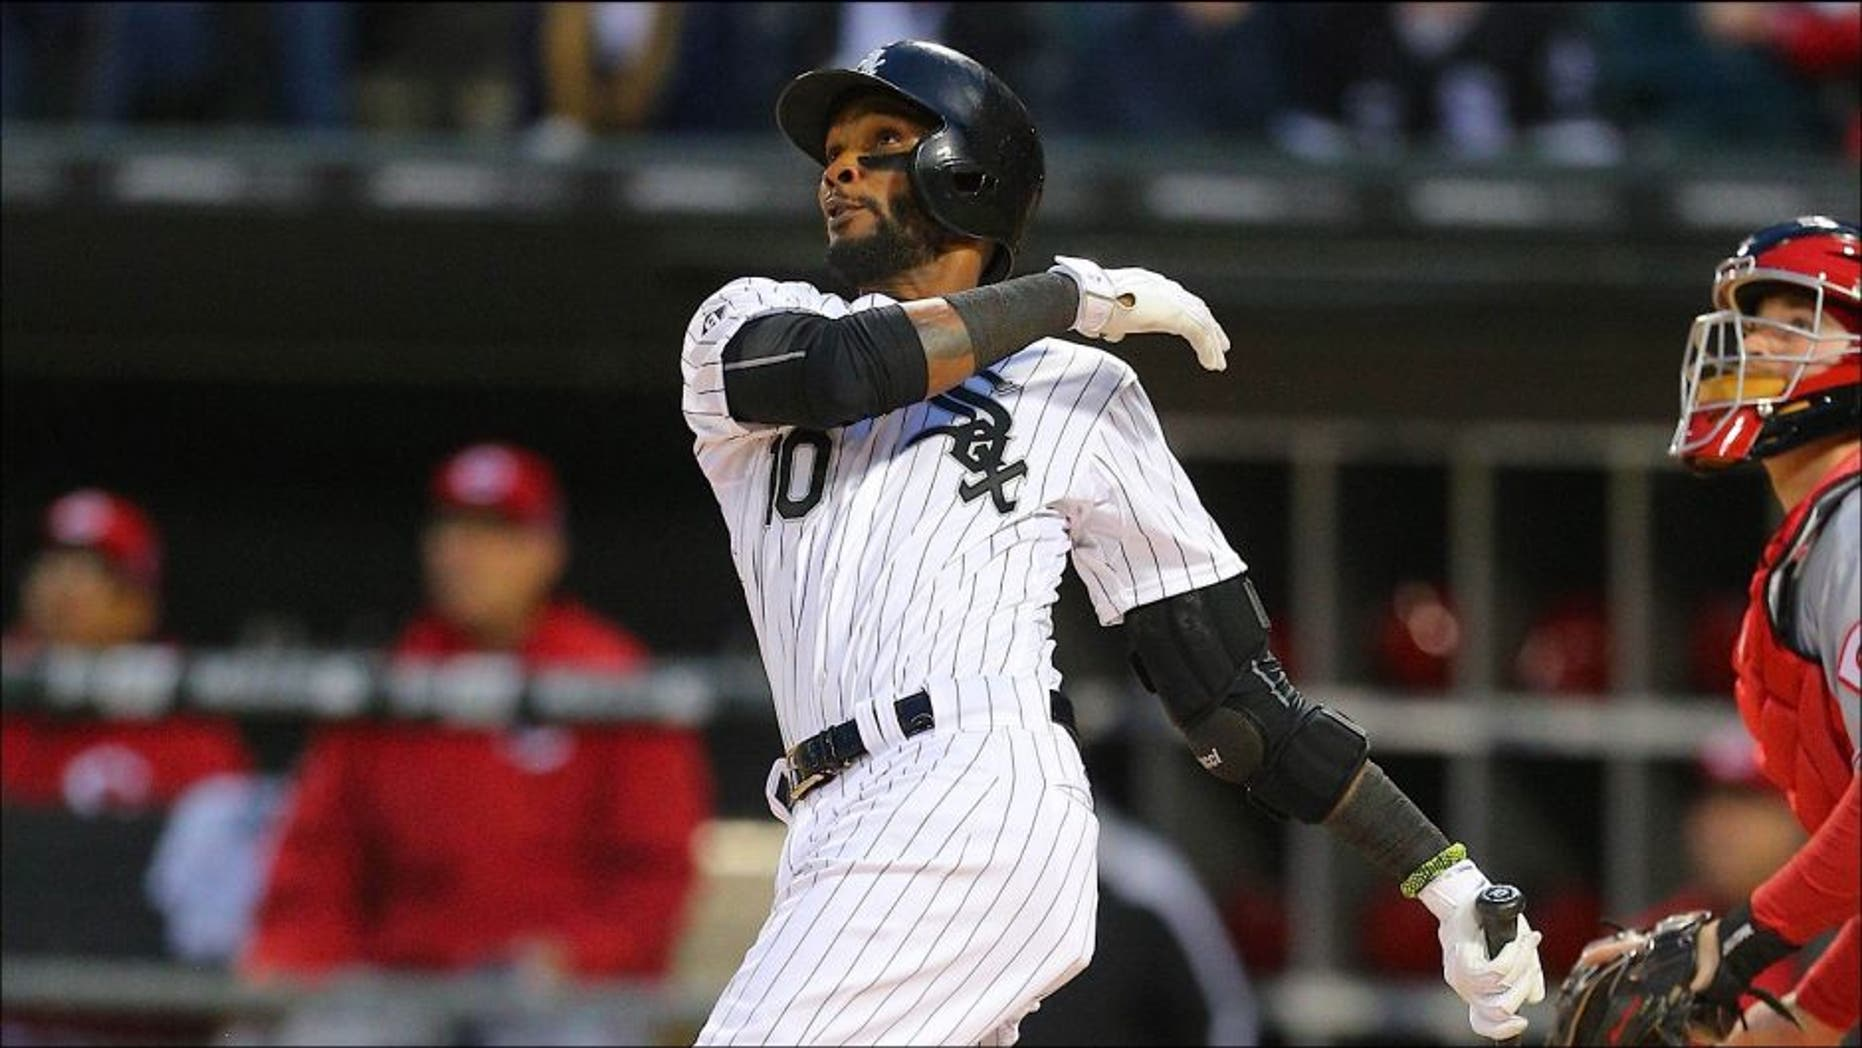 May 9, 2015; Chicago, IL, USA; Chicago White Sox shortstop Alexei Ramirez (10) hits a 2 run home run during the second inning in game two of a doubleheader against the Cincinnati Reds at U.S Cellular Field. Cincinnati won 10-4. Mandatory Credit: Dennis Wierzbicki-USA TODAY Sports